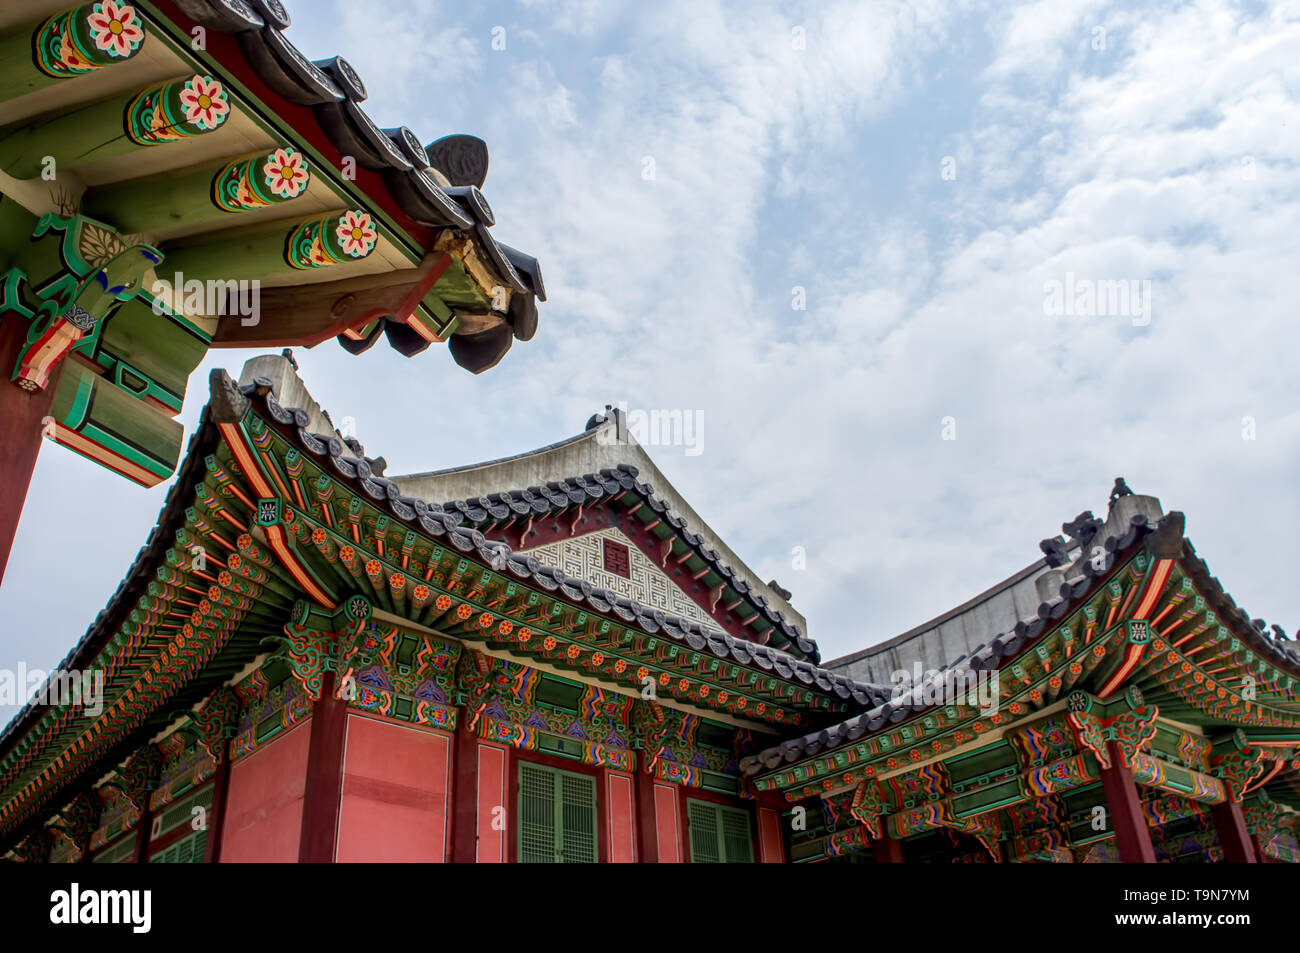 Buddhist temple in Seoul, South Korea - beautiful historic religious building with bright colors - Stock Image